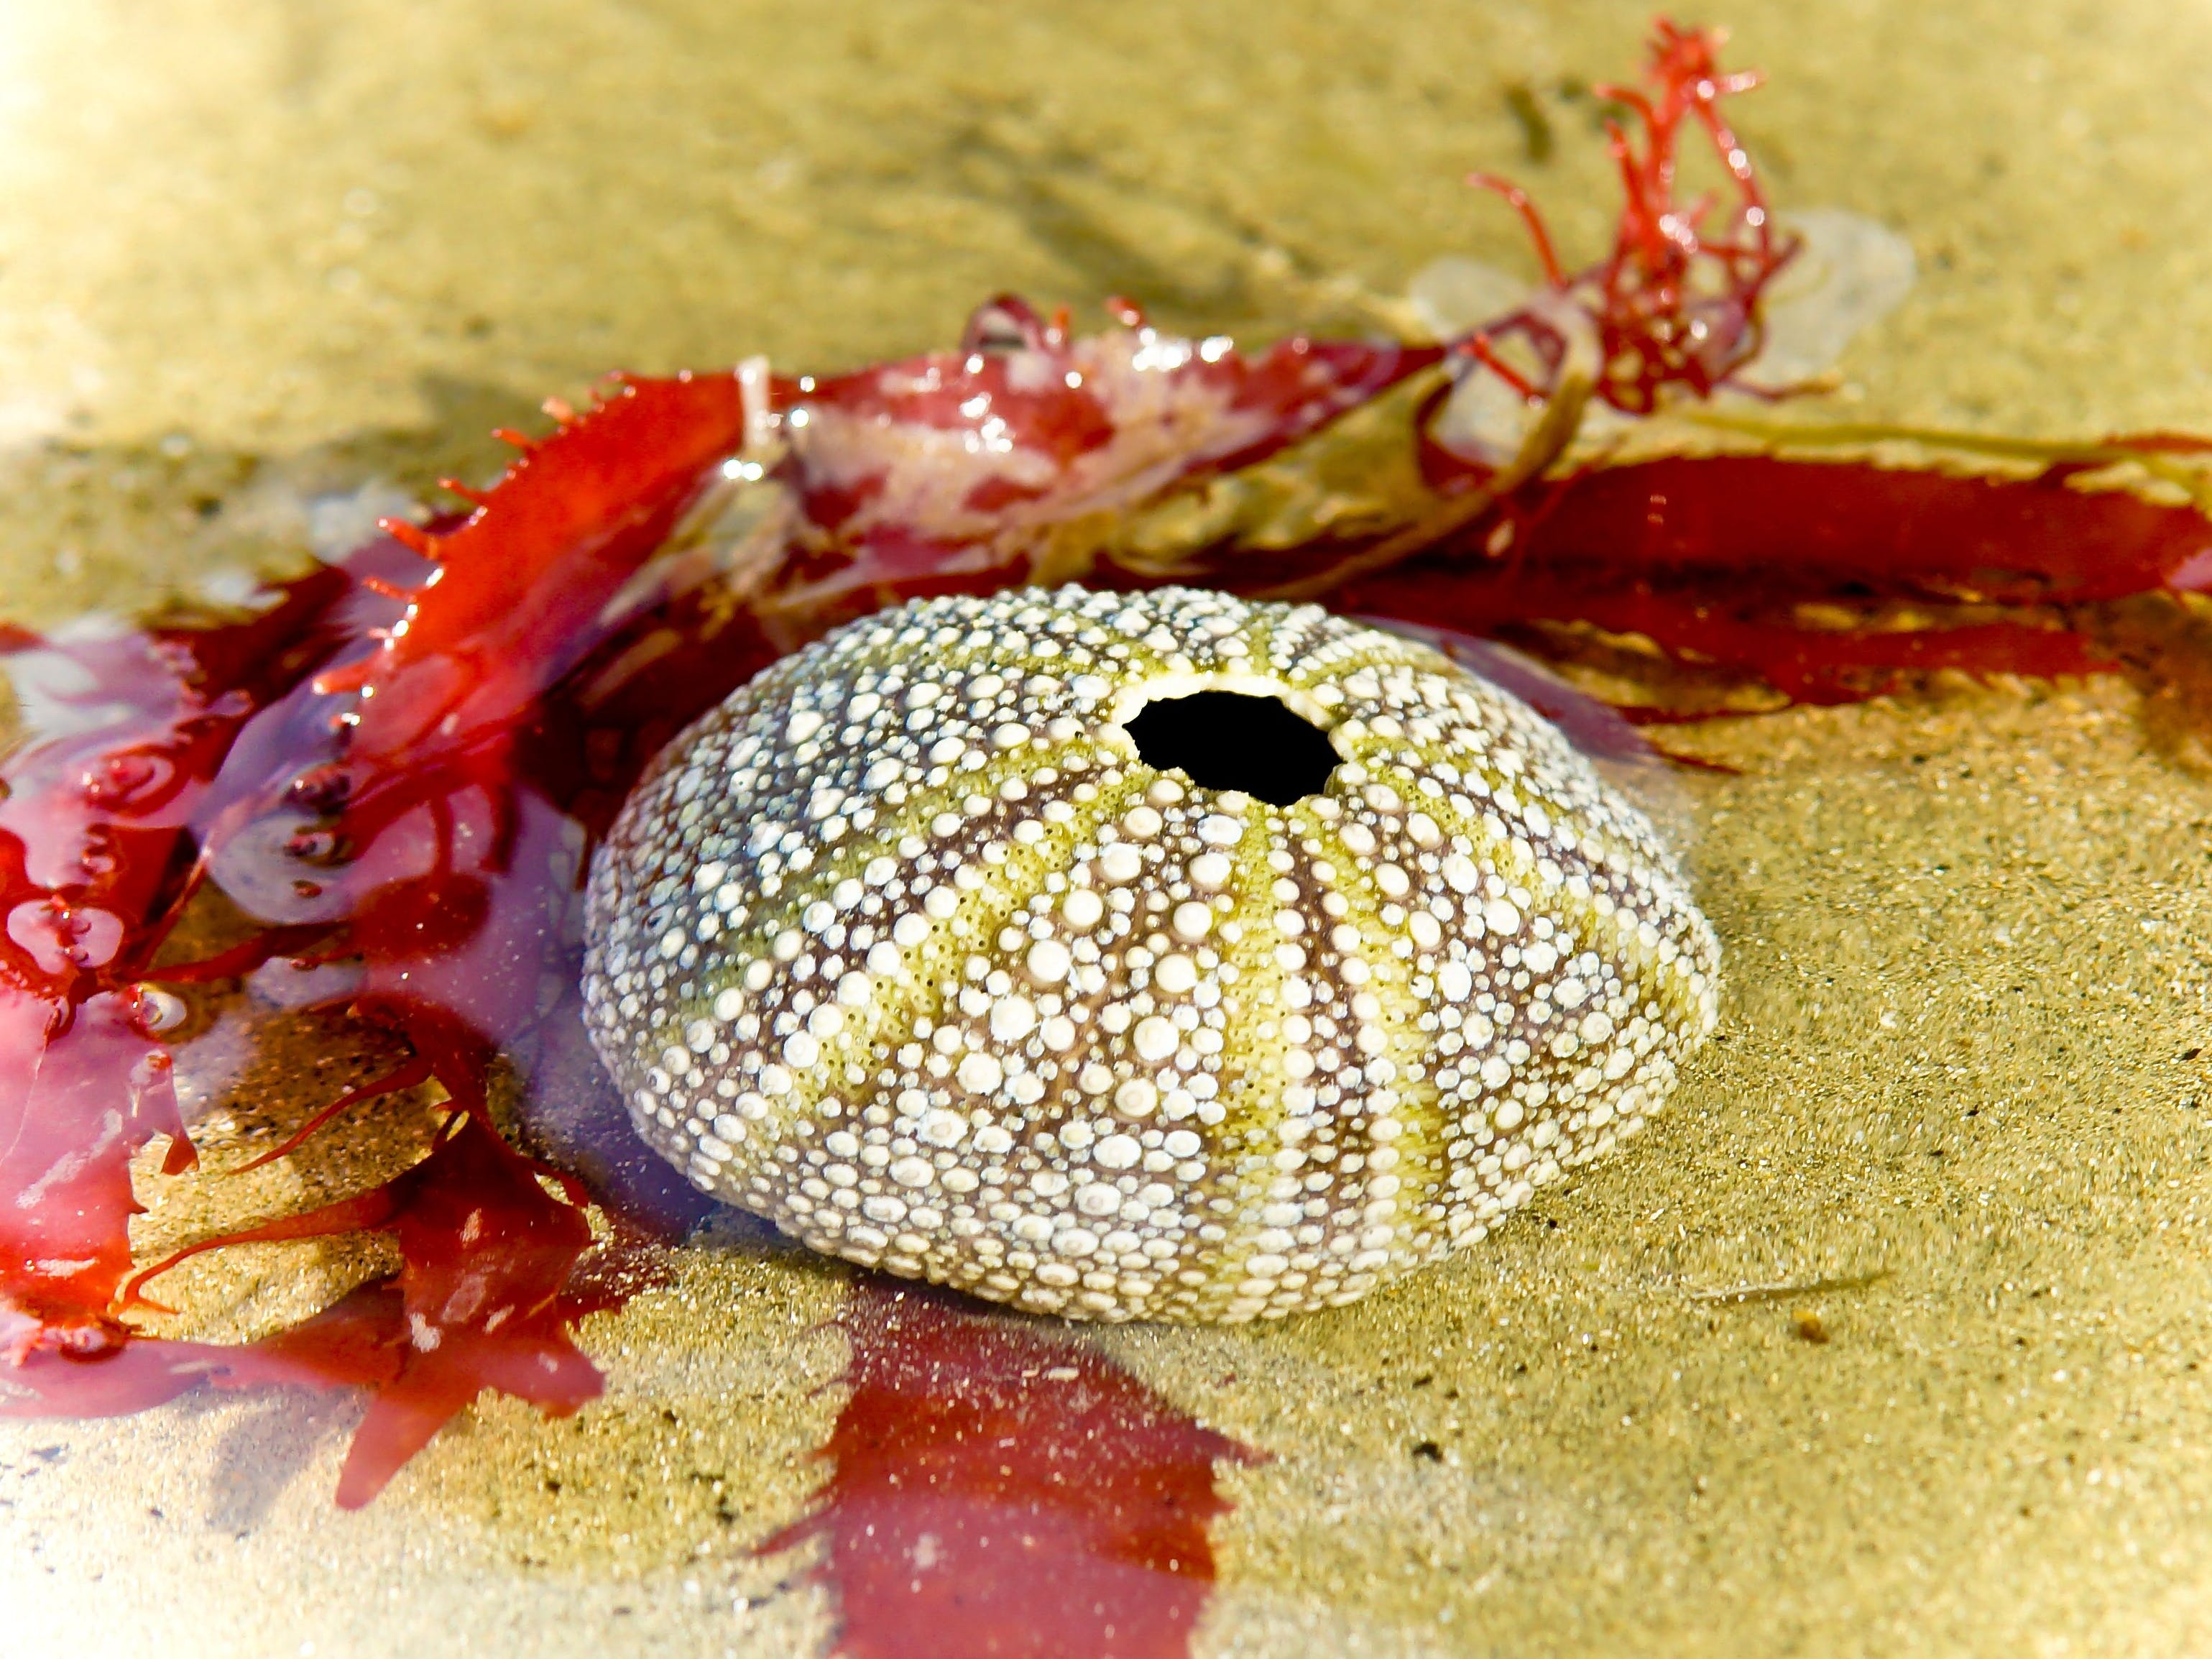 Red weed surrounded a sea urchin shell